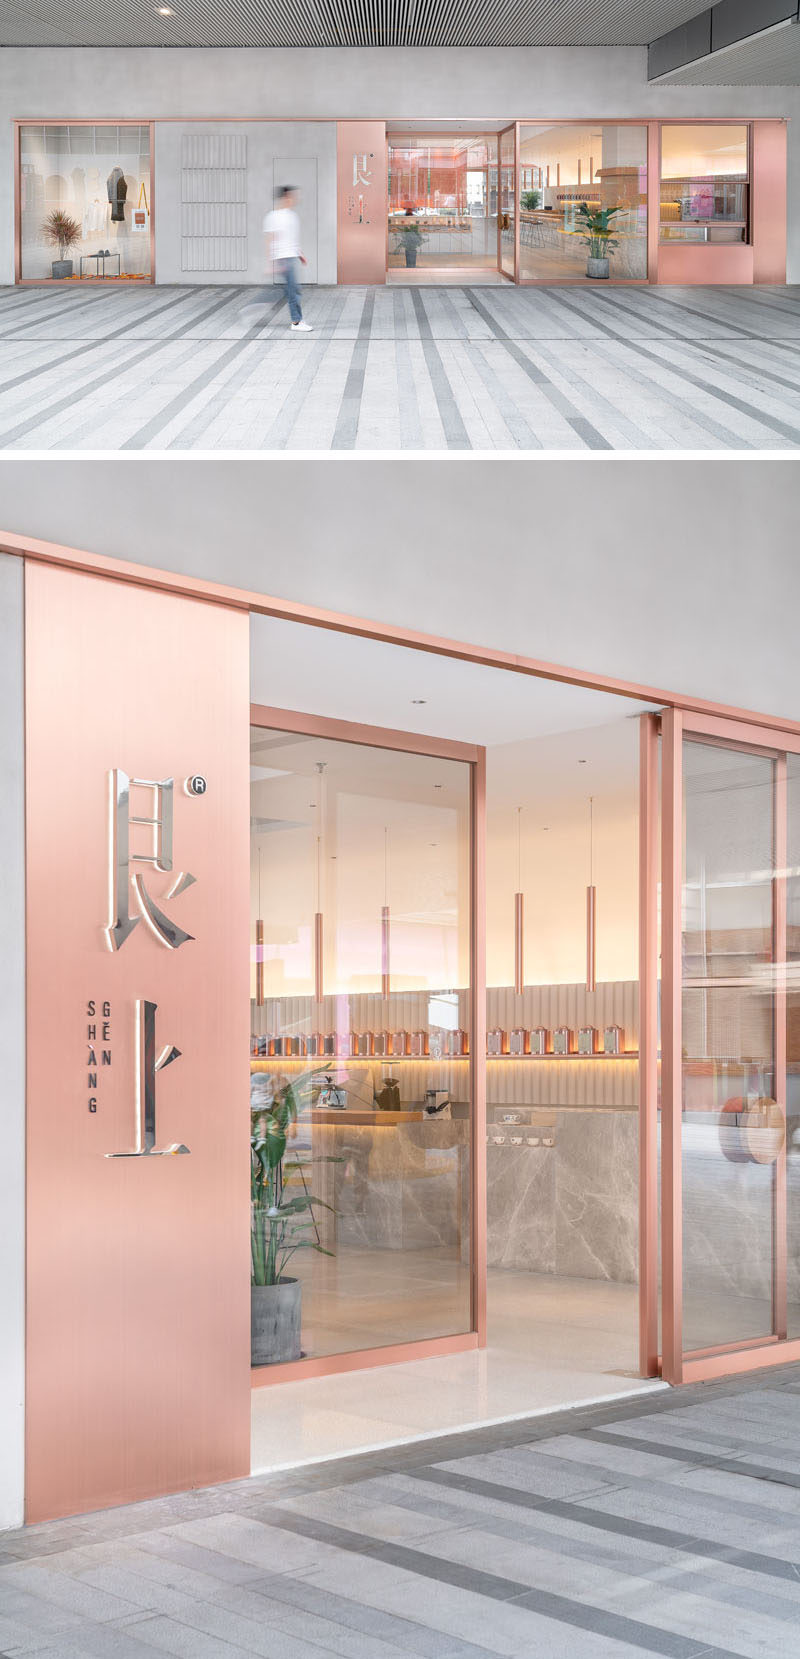 "OFFICE COASTLINE have recently completed a new modern tea house in the city of Shanghai, China, for the life-style brand ""Genshang"". #InteriorDesign #CafeDesign #TeaHouse #ModernRestaurant"